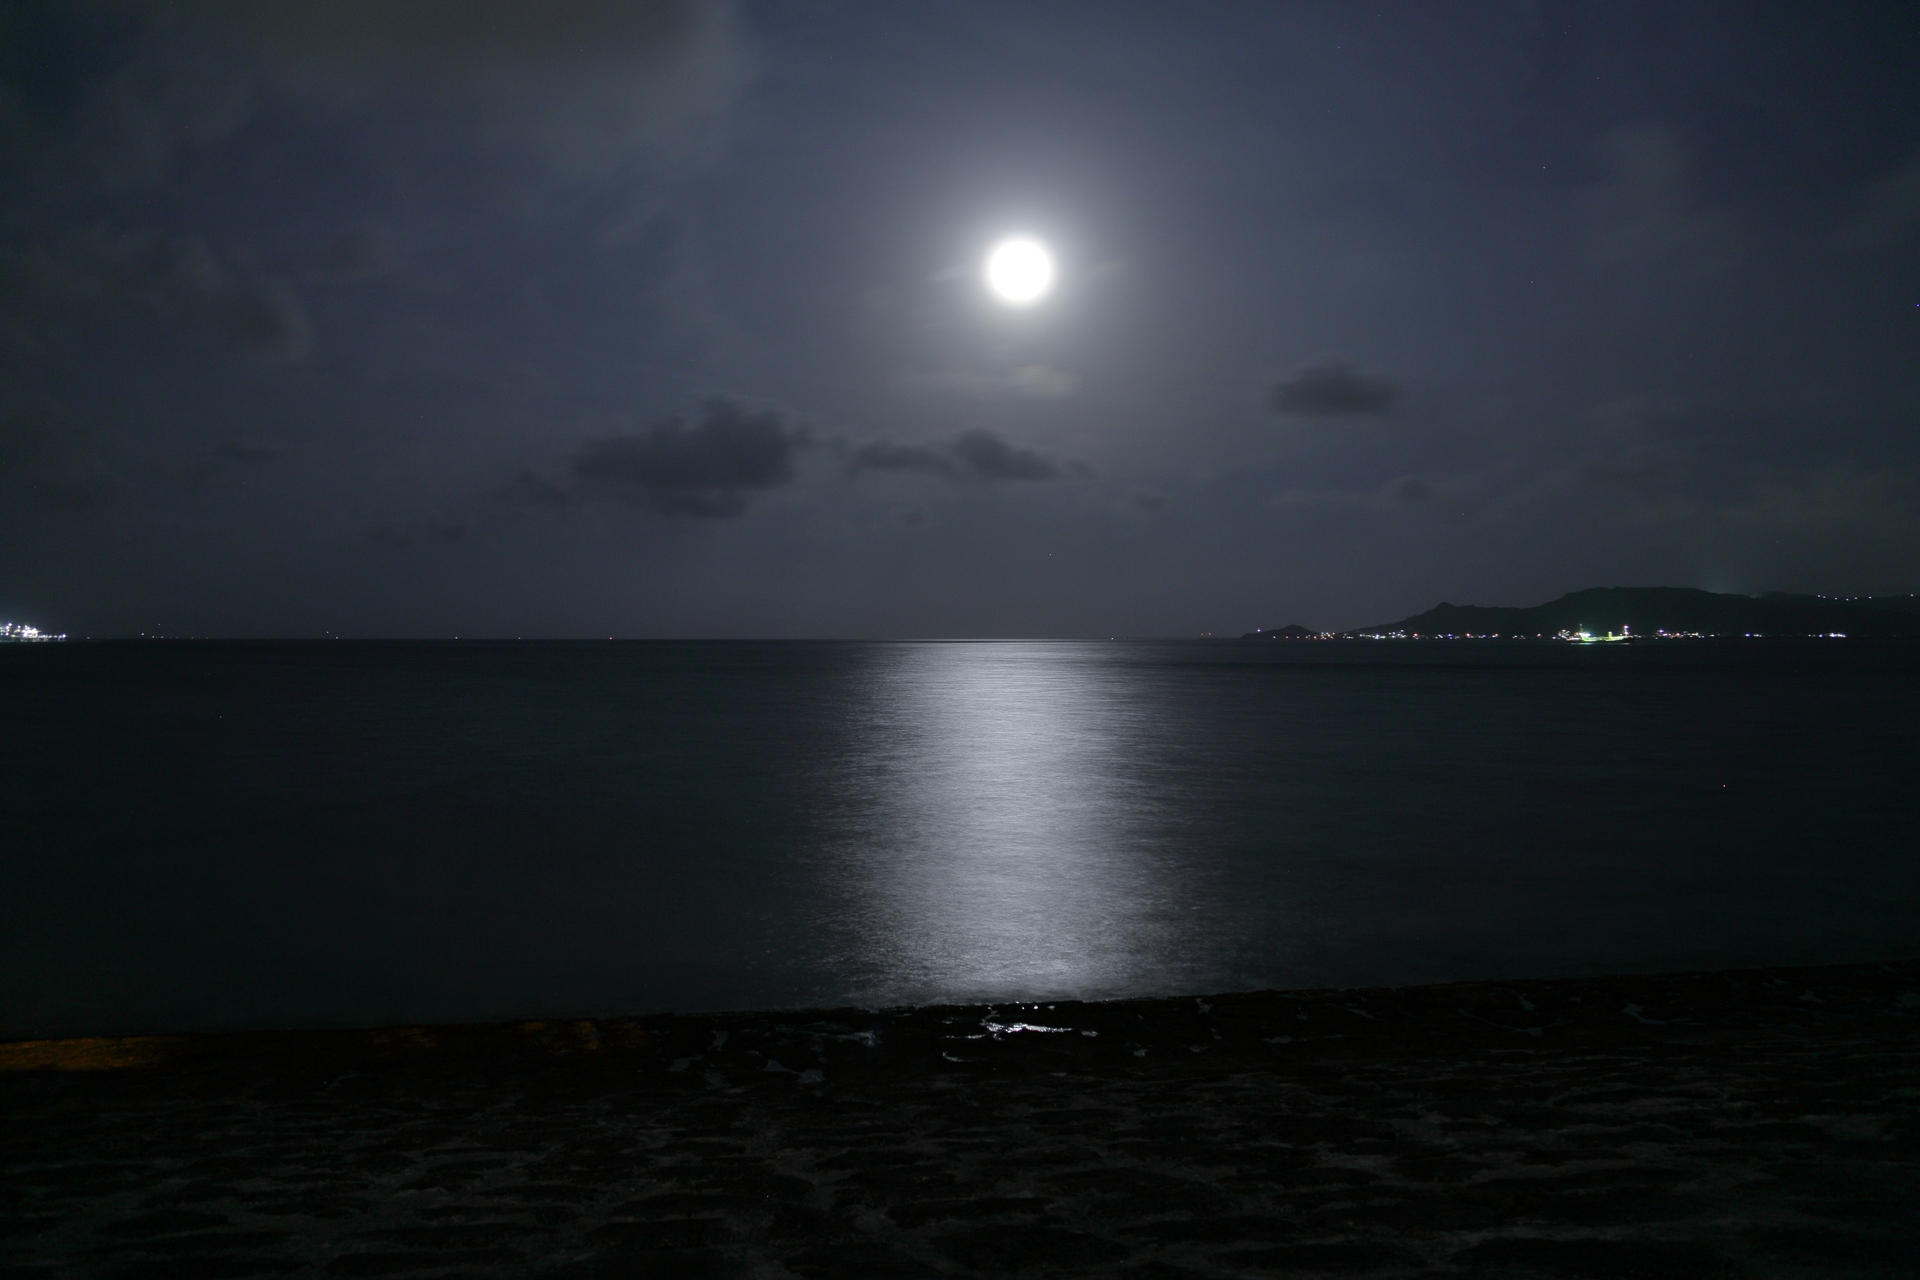 okinawa-Silvery_Full_Moon_of_Ryukyu-m.jpg